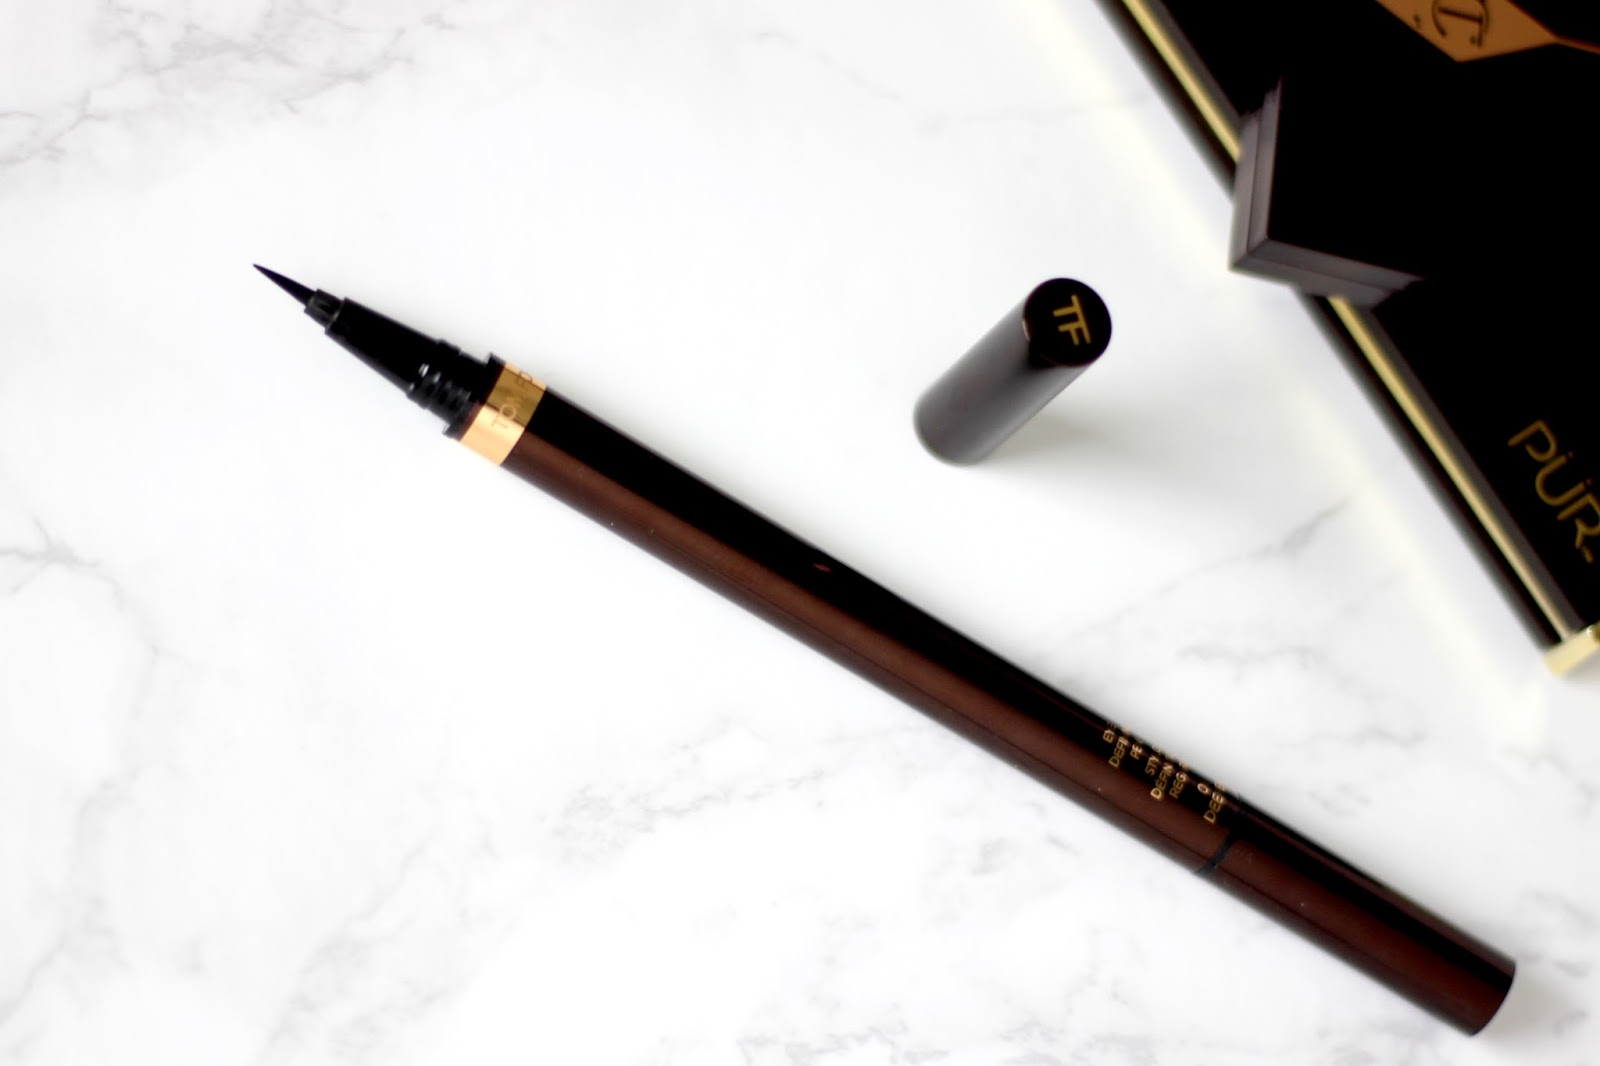 tom ford eye defining pen review